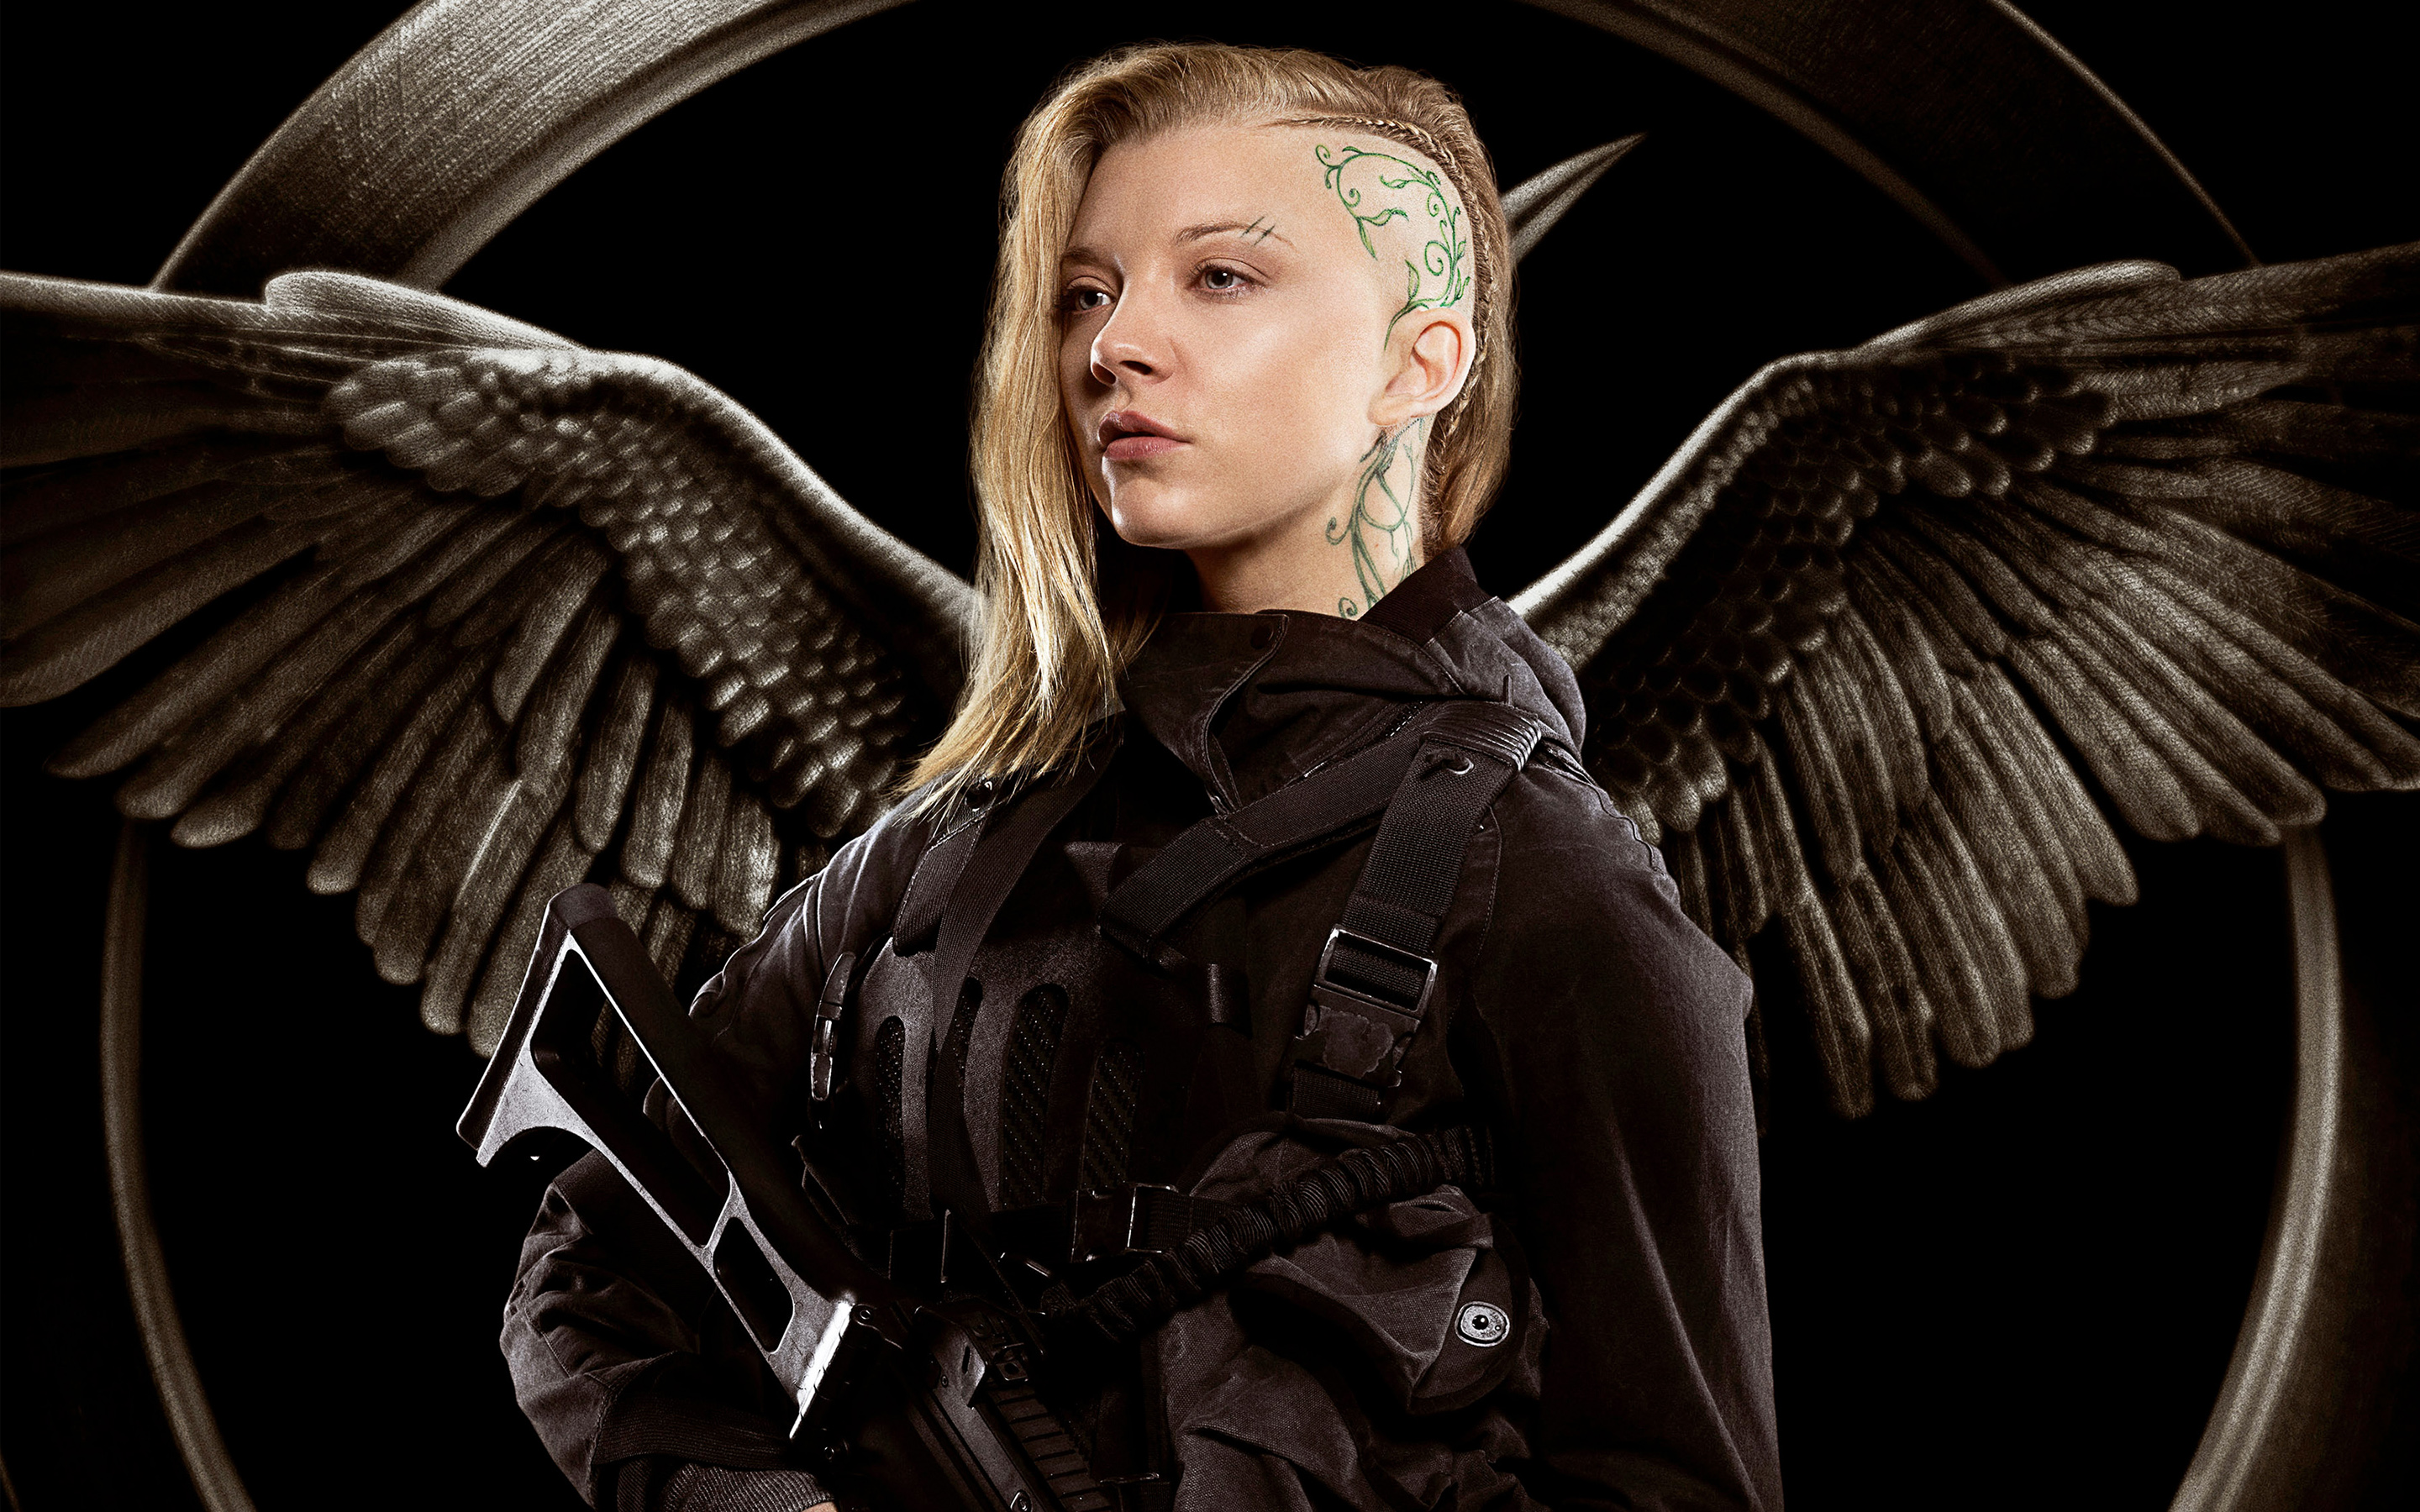 Natalie Dormer as Cressida 600.33 Kb